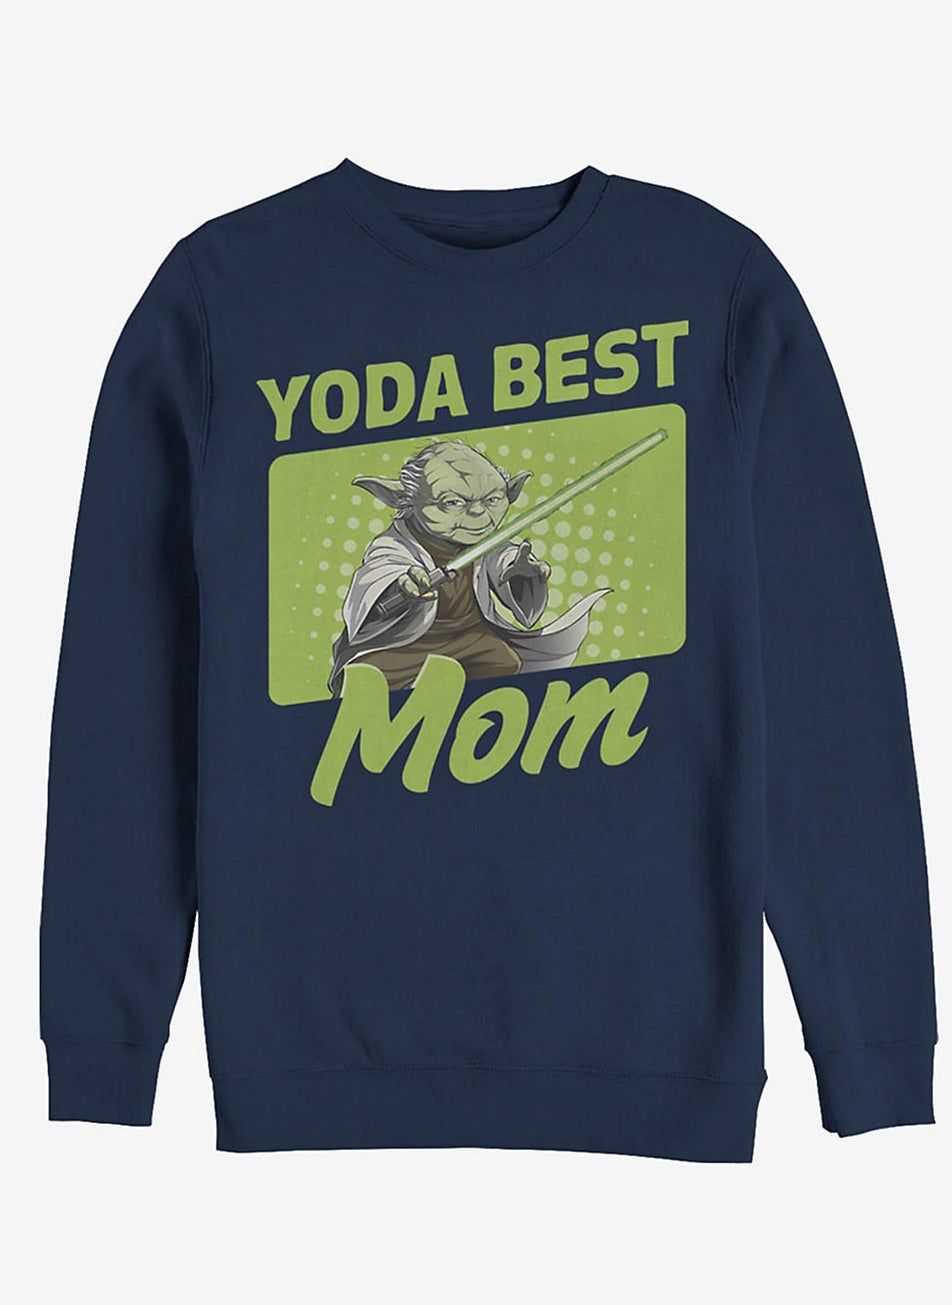 """navy sweatshirt with graphic of Yoda and the text """"Yoda best mom"""""""